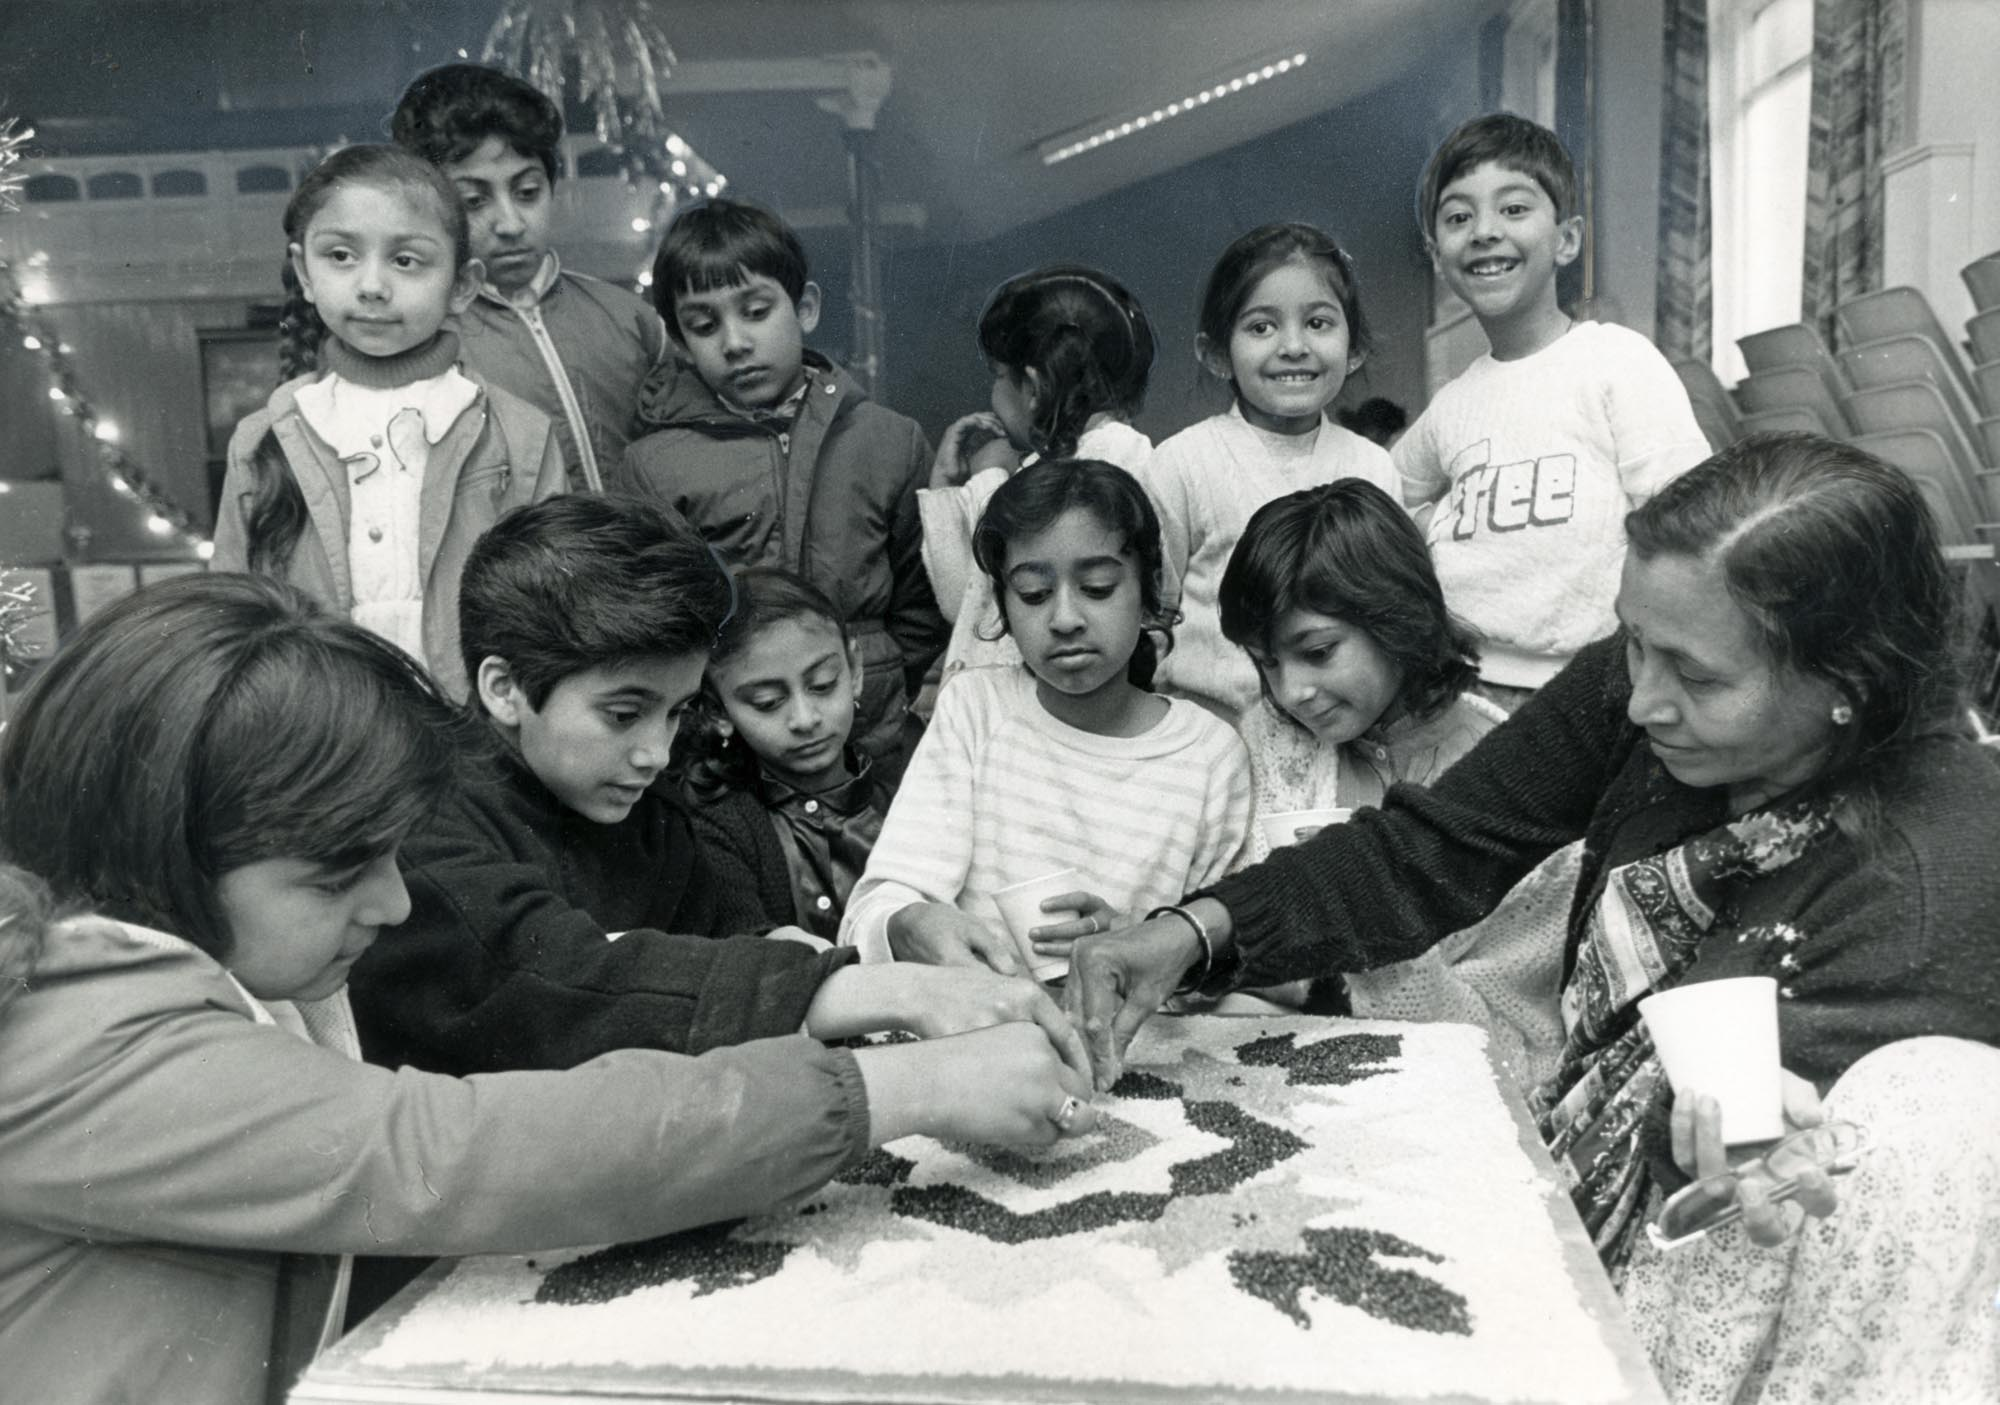 Teaching children how to make rangoli patterns at Belgrave Neighbourhood Centre - Leicester Mercury Archive at the University of Leicester